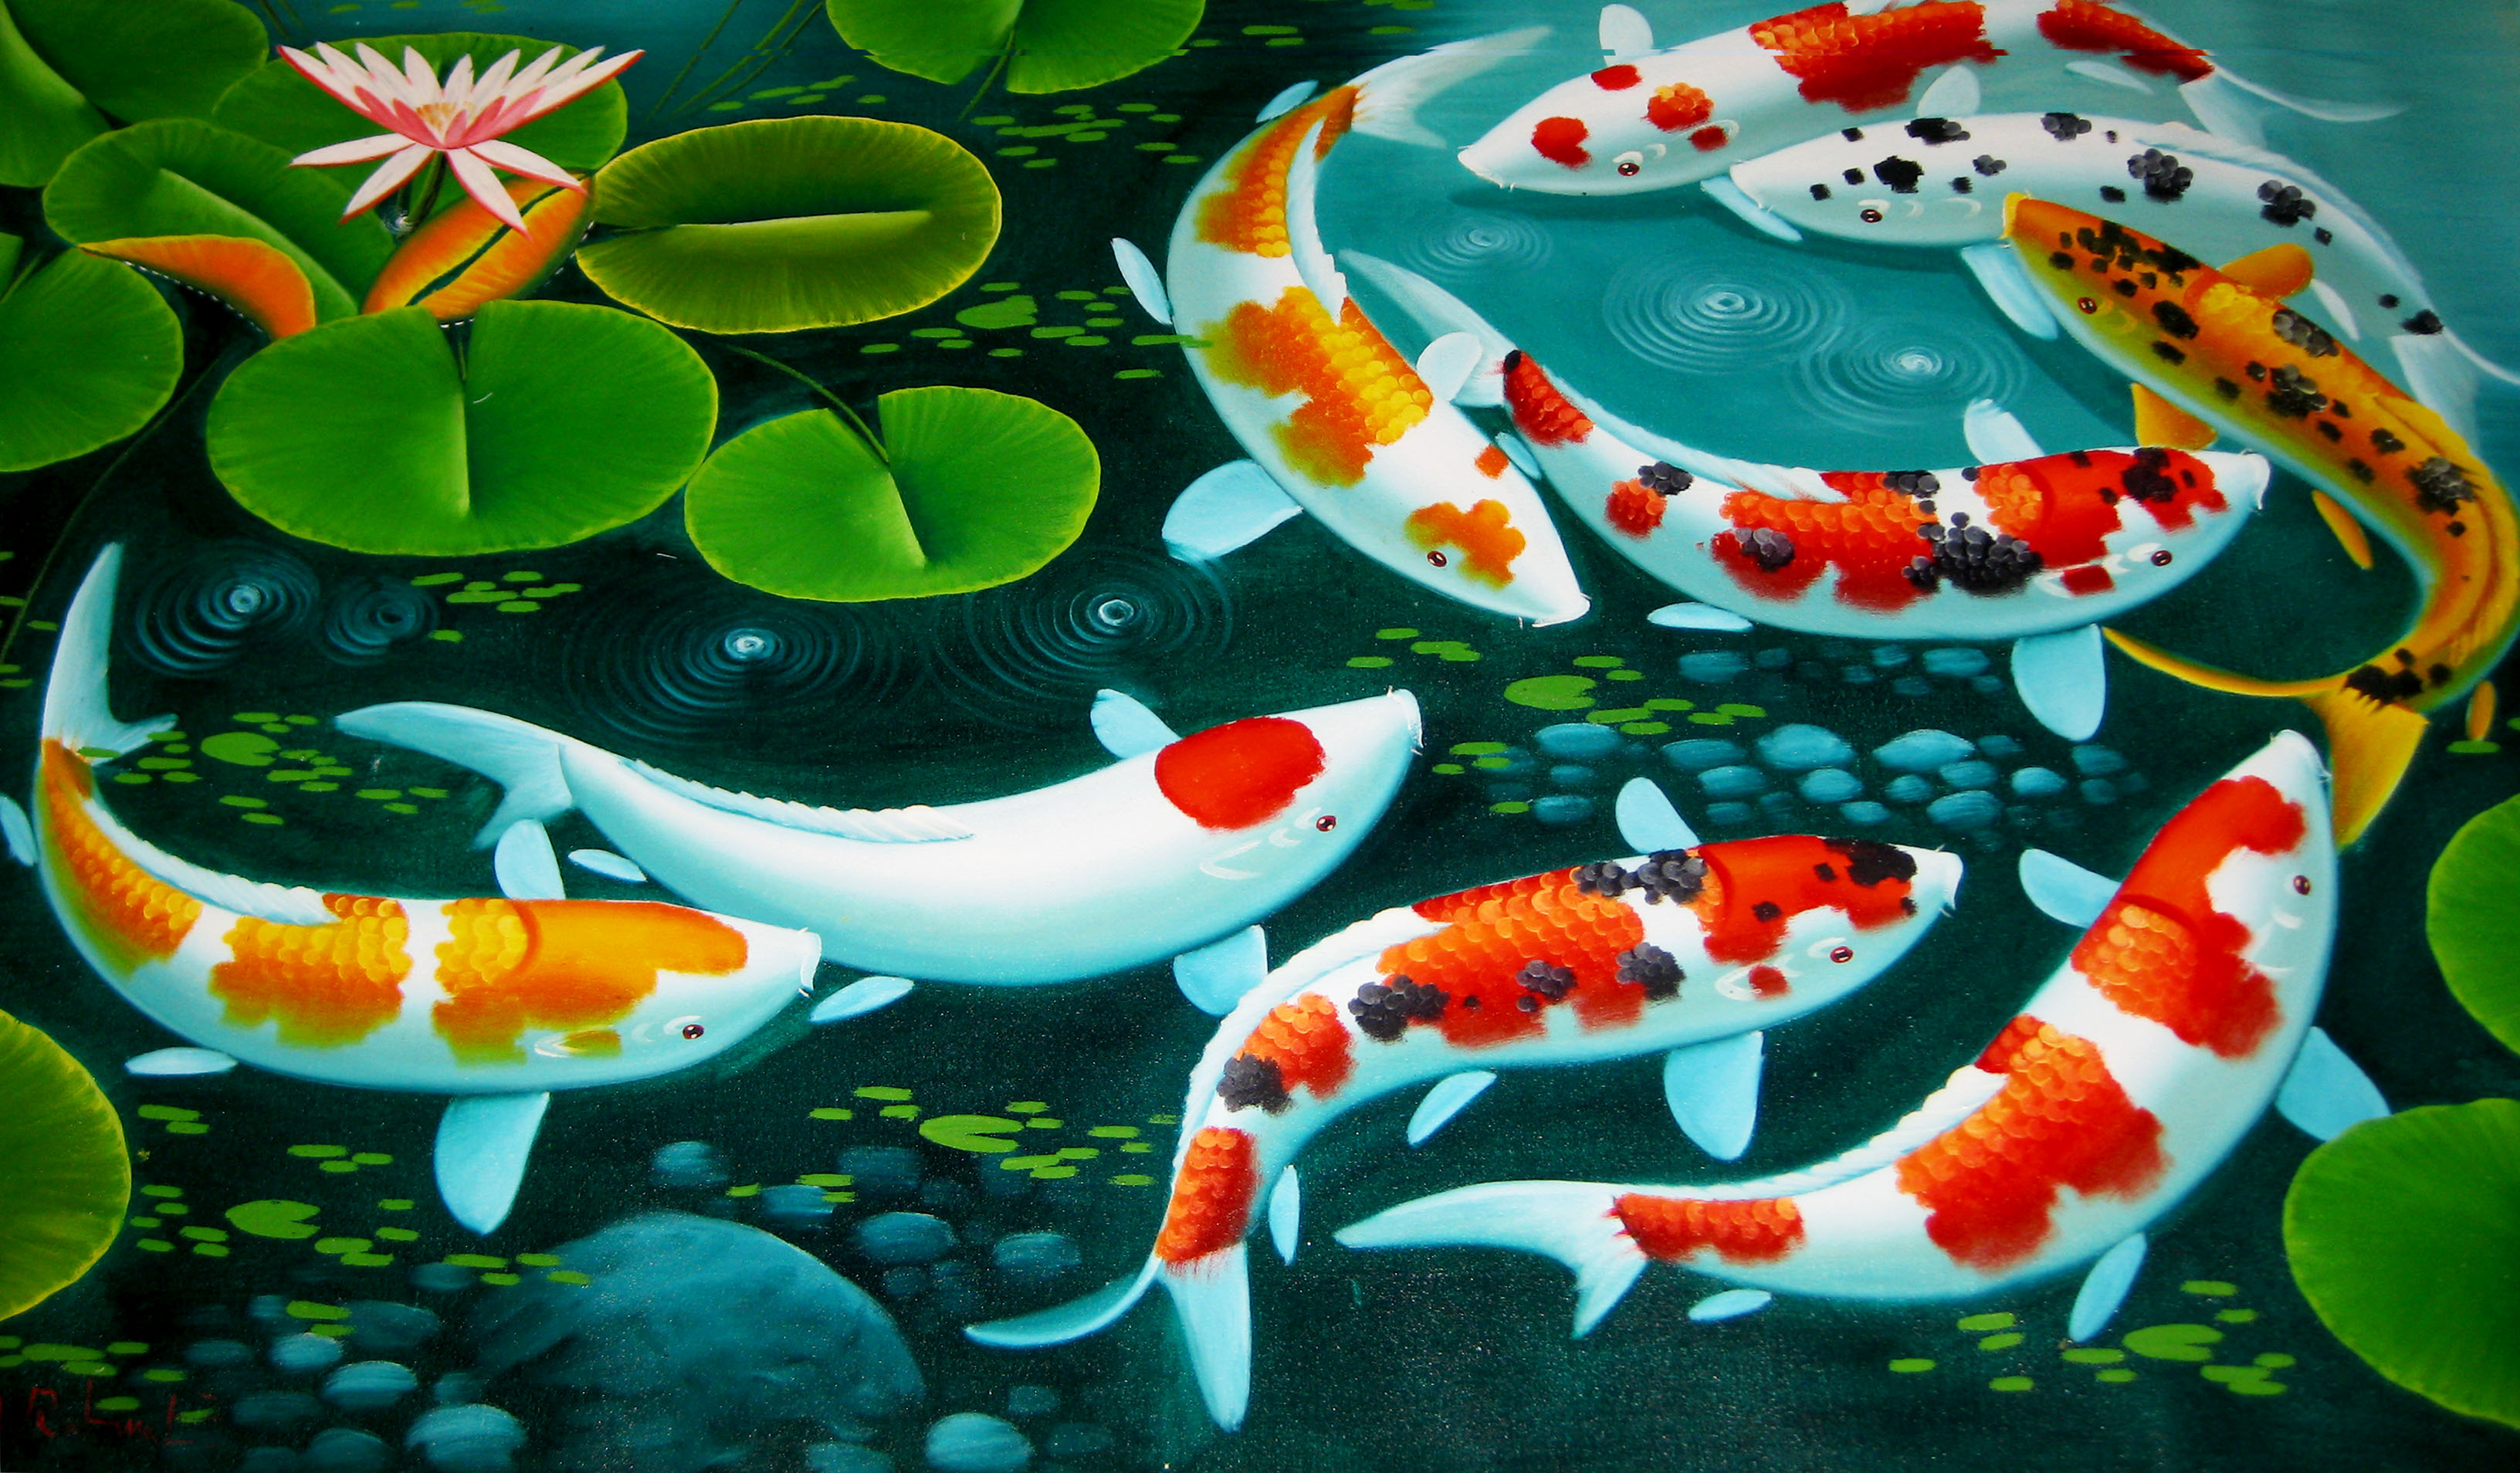 Koi pond live wallpaper wallpapersafari for Koi carp fish information